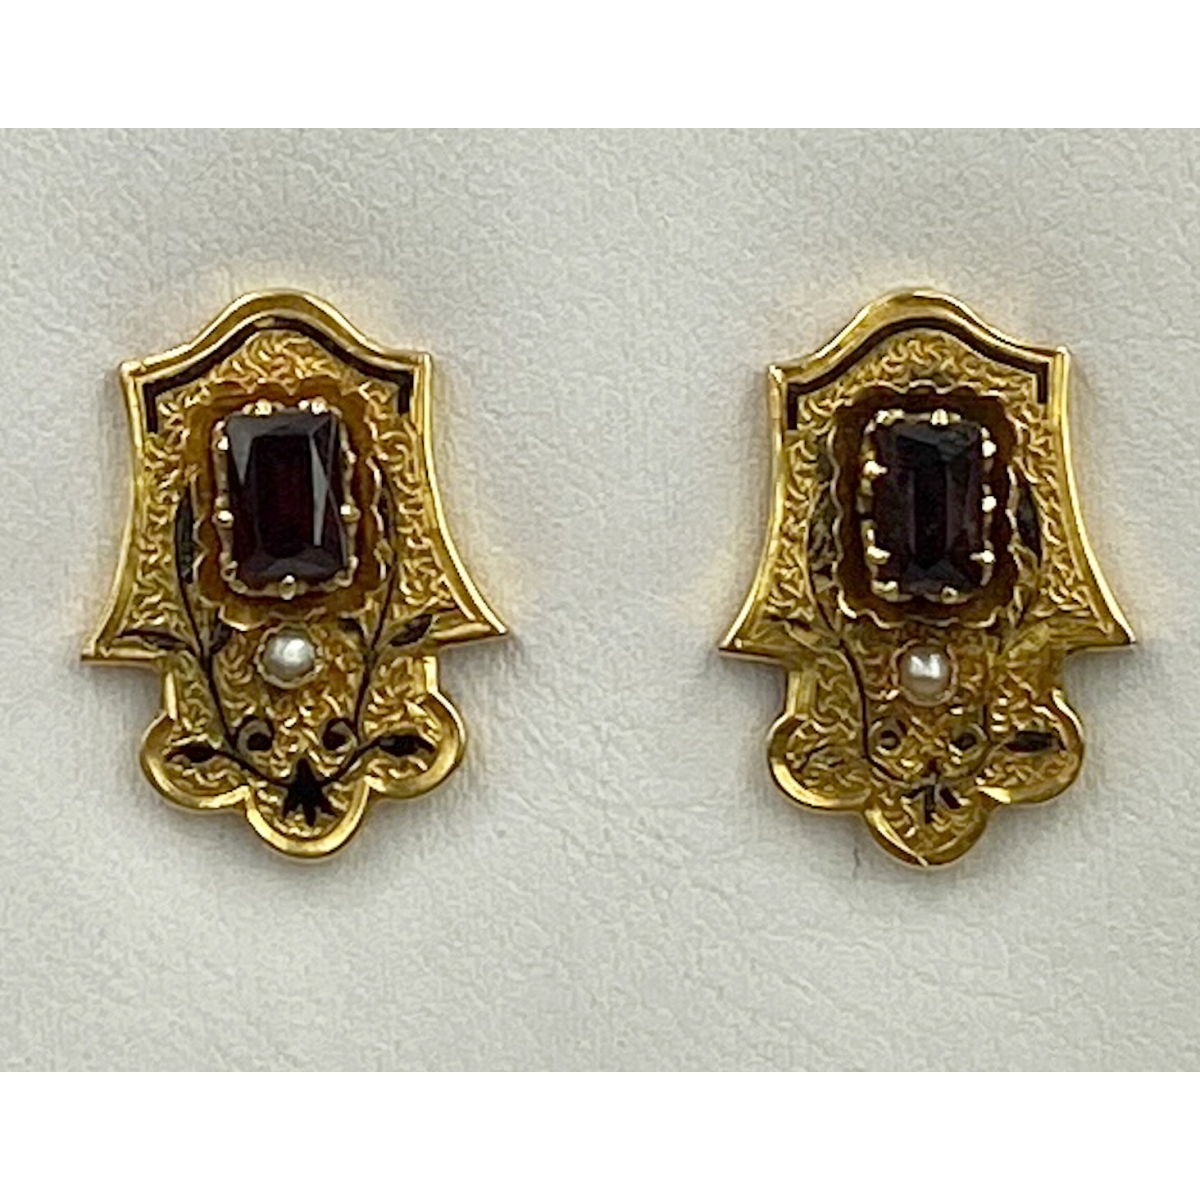 Rectangular Garnets, Seed Pearls, and Fabulous Black Enameling 14kt Gold Antique English Earrings